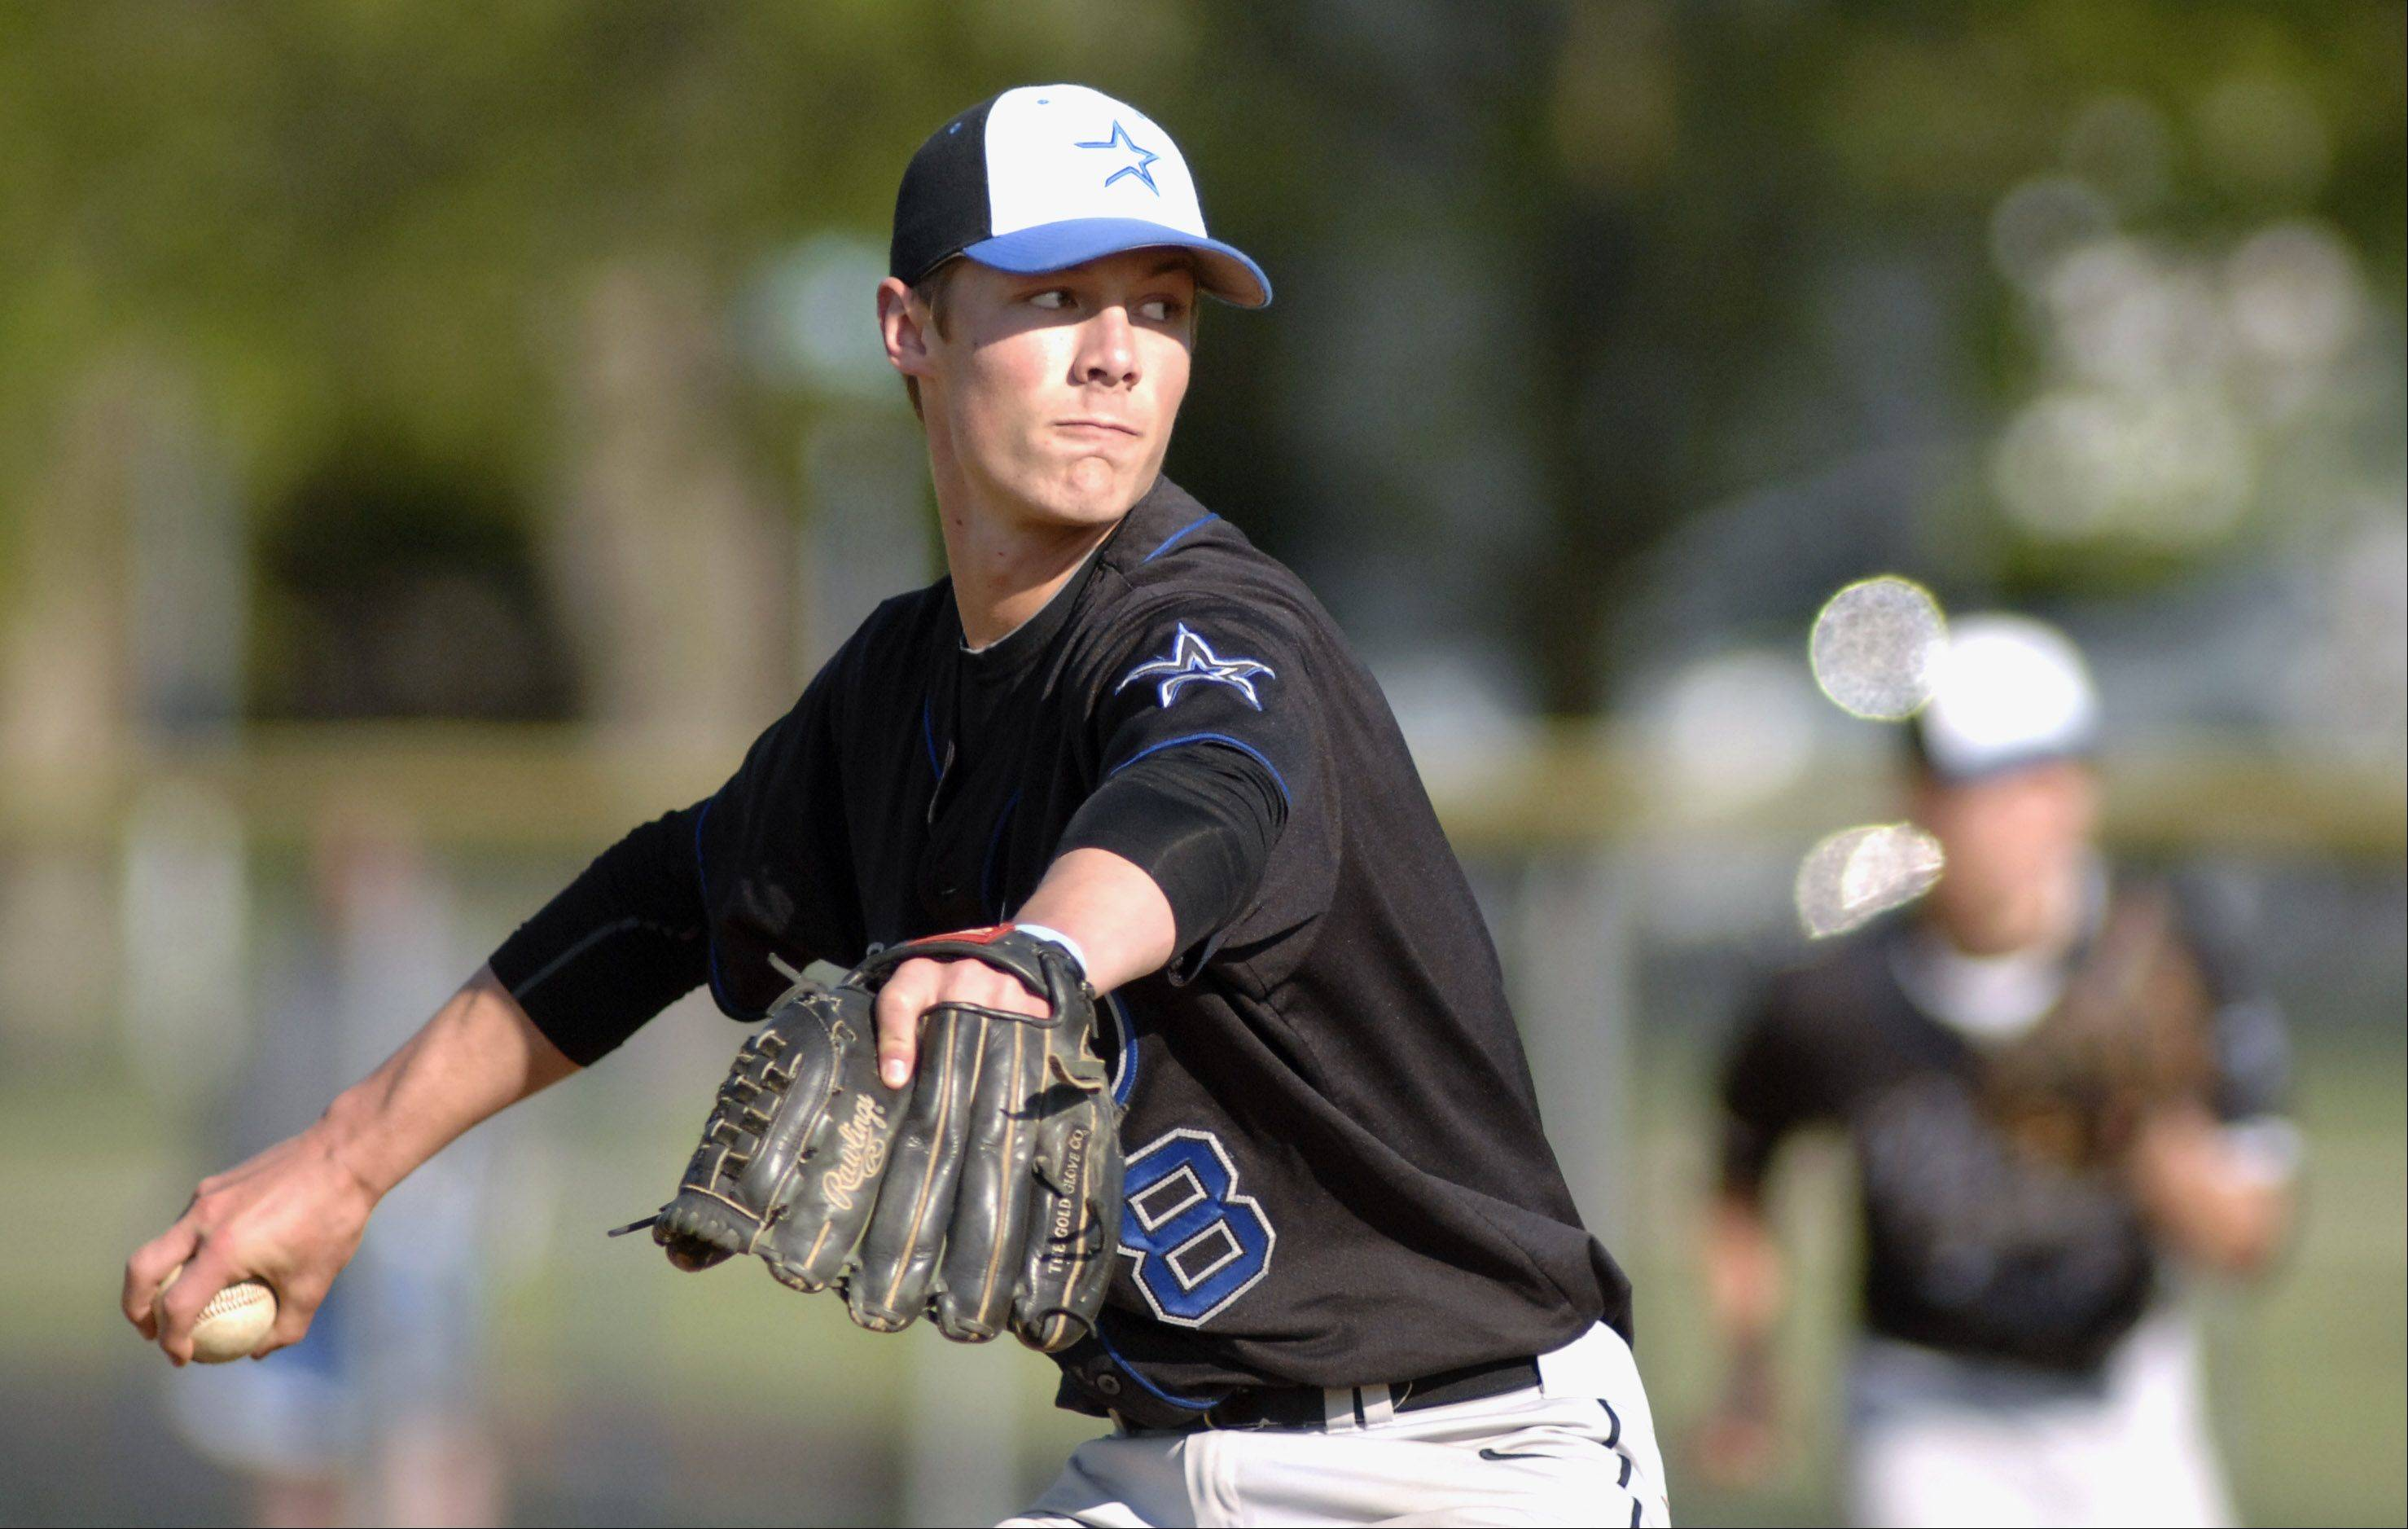 Laura Stoecker/lstoecker@dailyherald.comSt. Charles North pitcher Jake Johansmeier on Thursday, April 26.